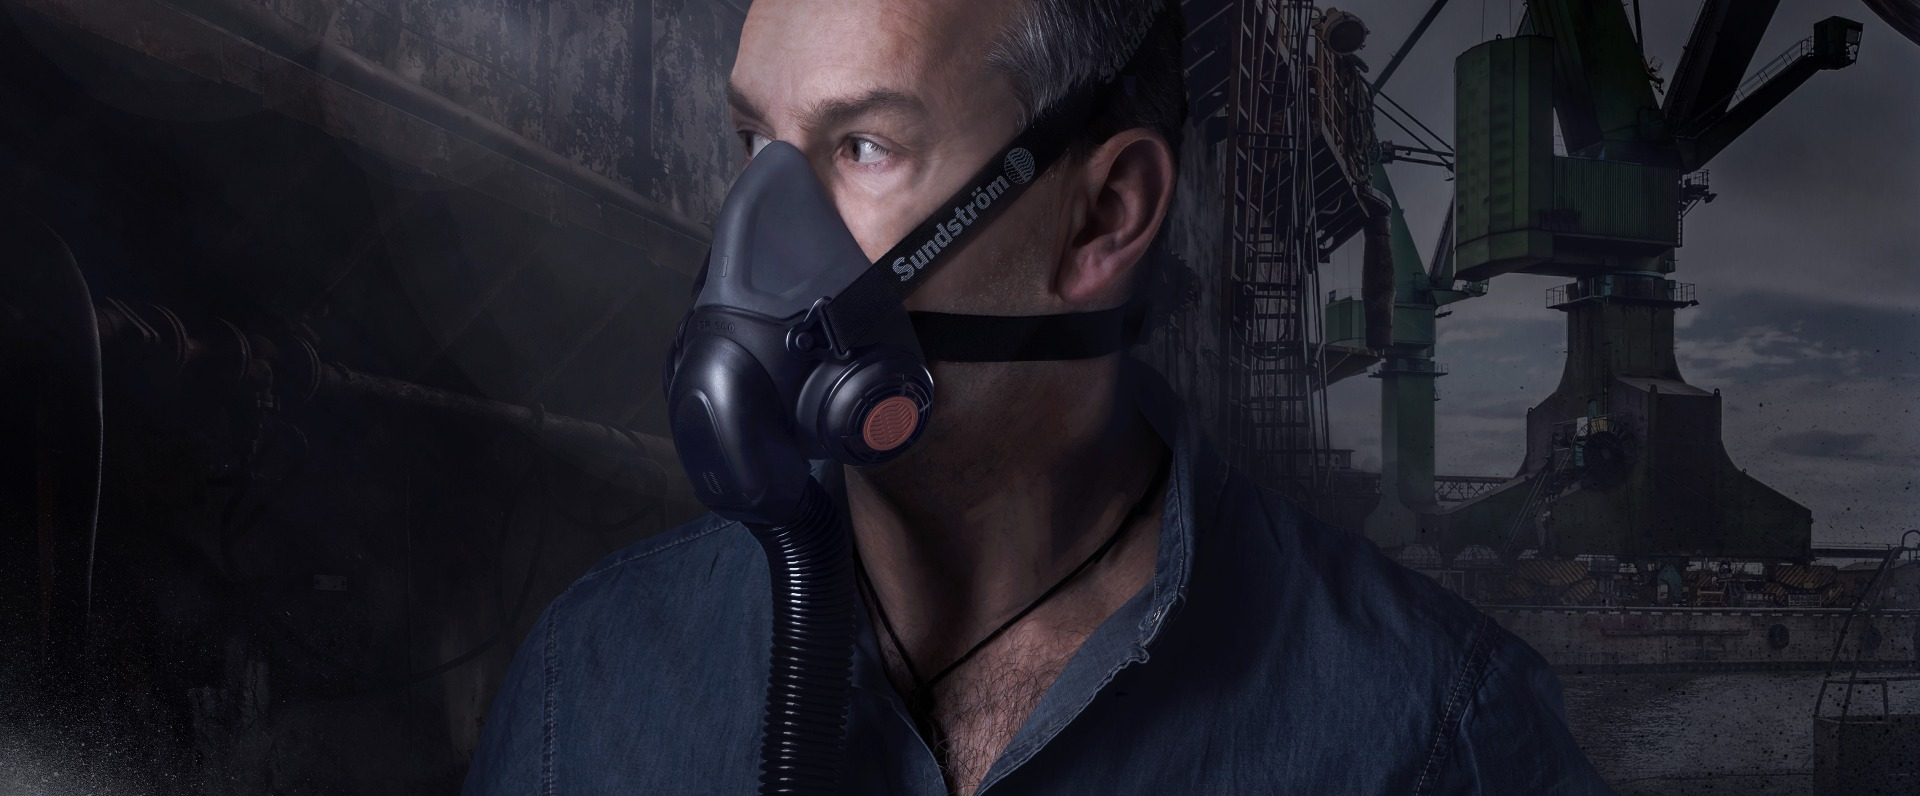 air supply respirator mask